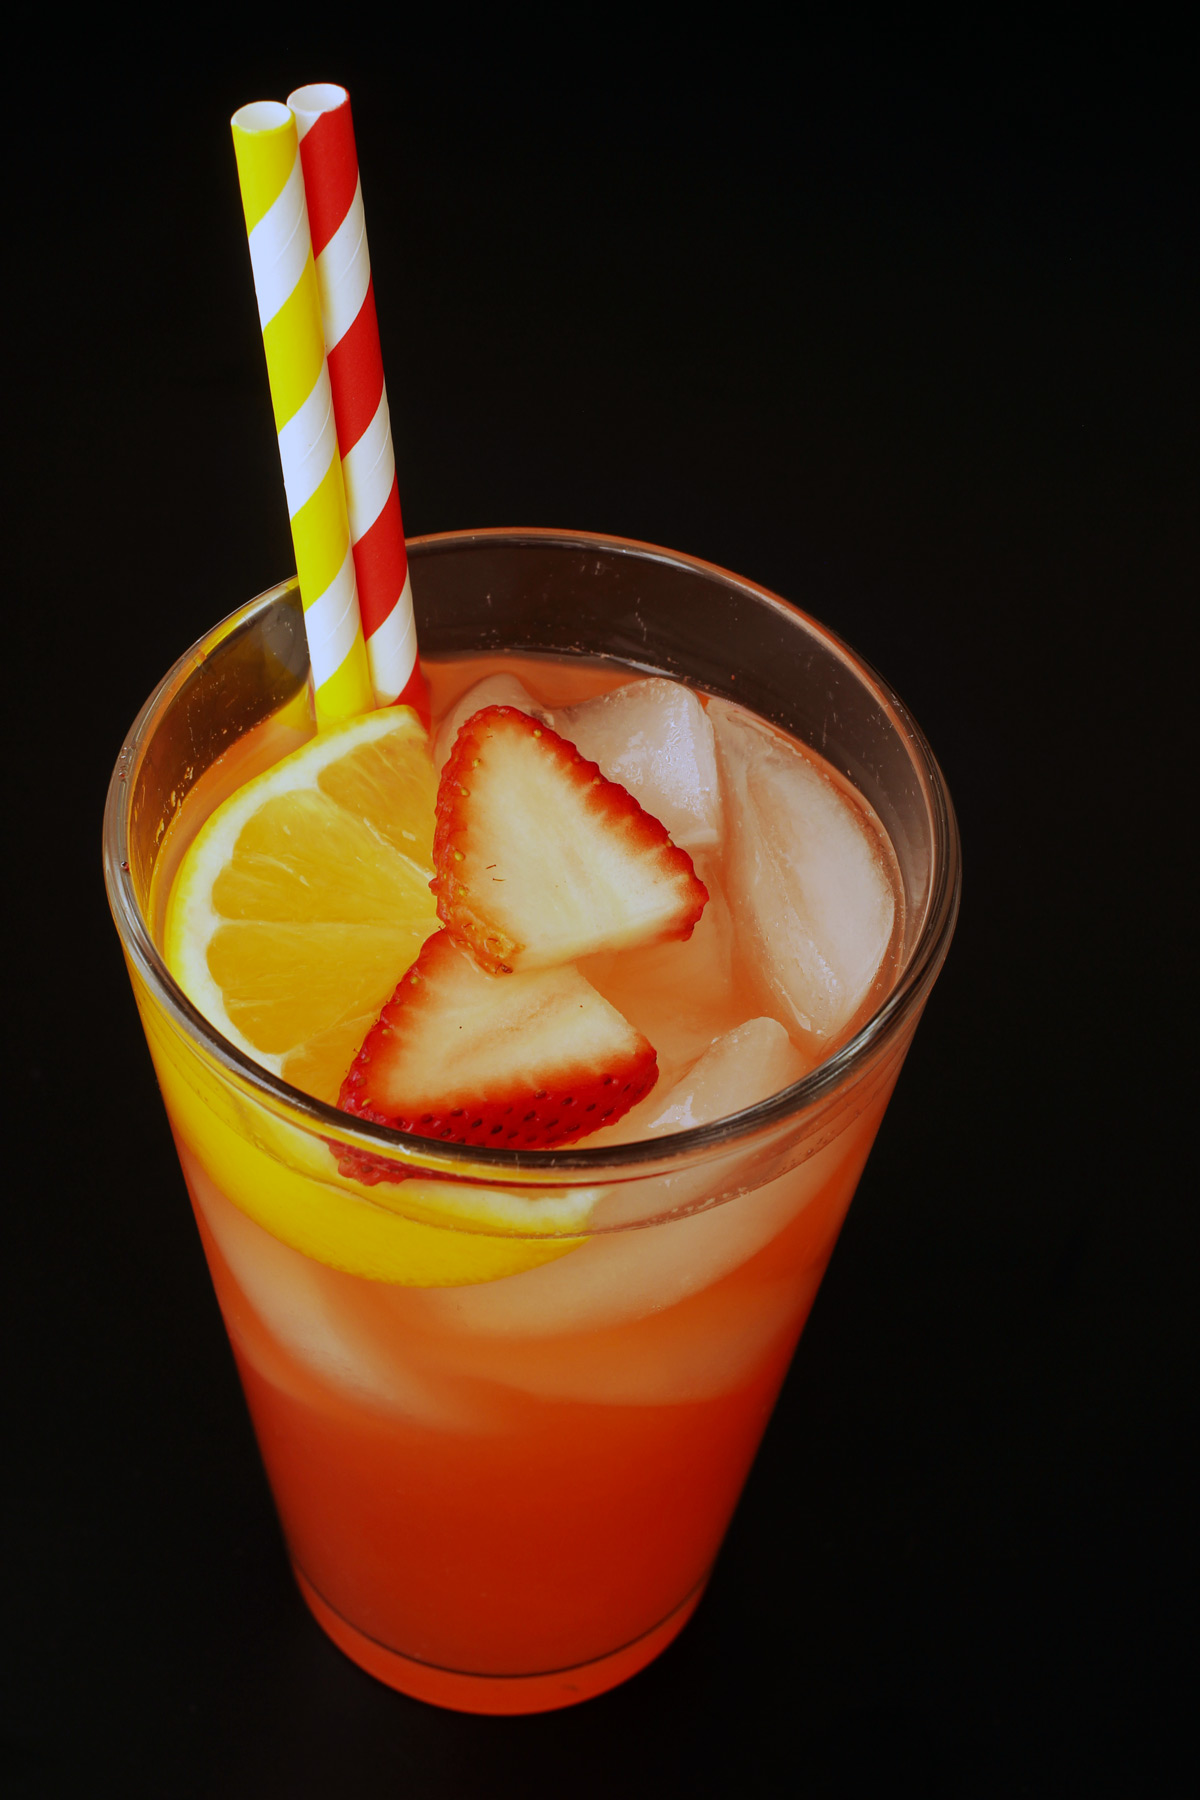 glass of lemonade with strawberry slices and lemon wedge on top of ice with straws